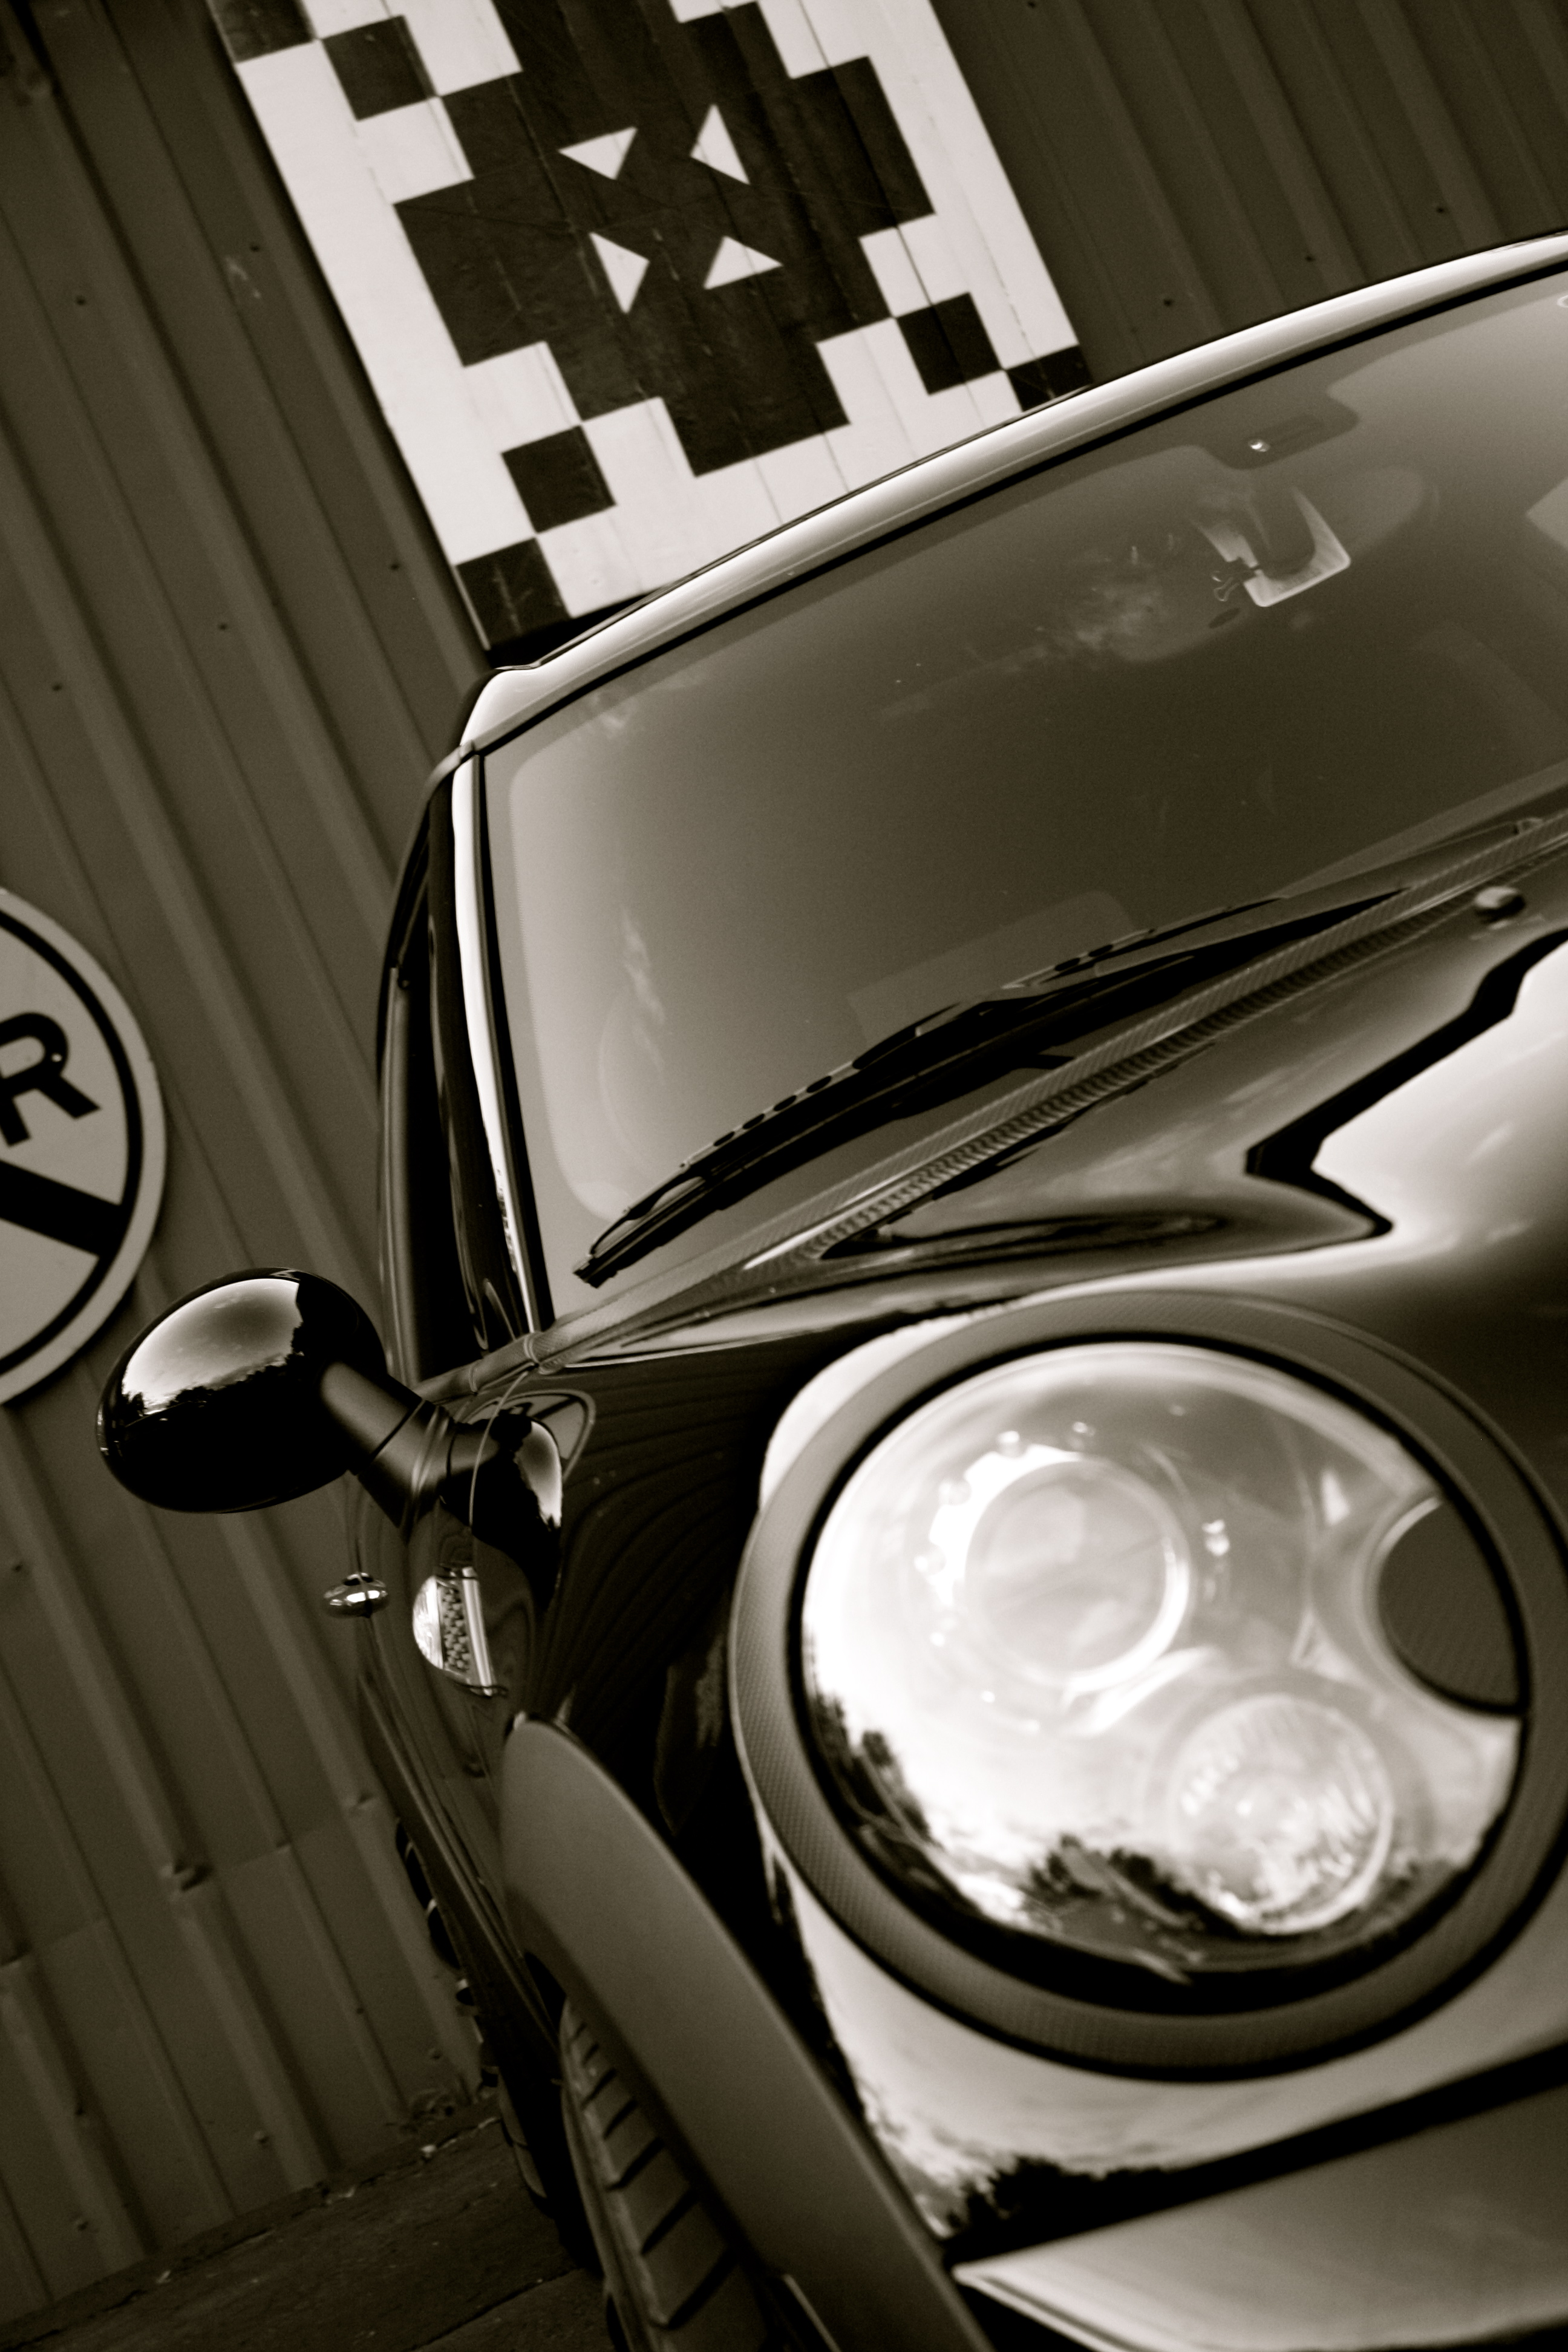 Mini Cooper black and white close up headlight